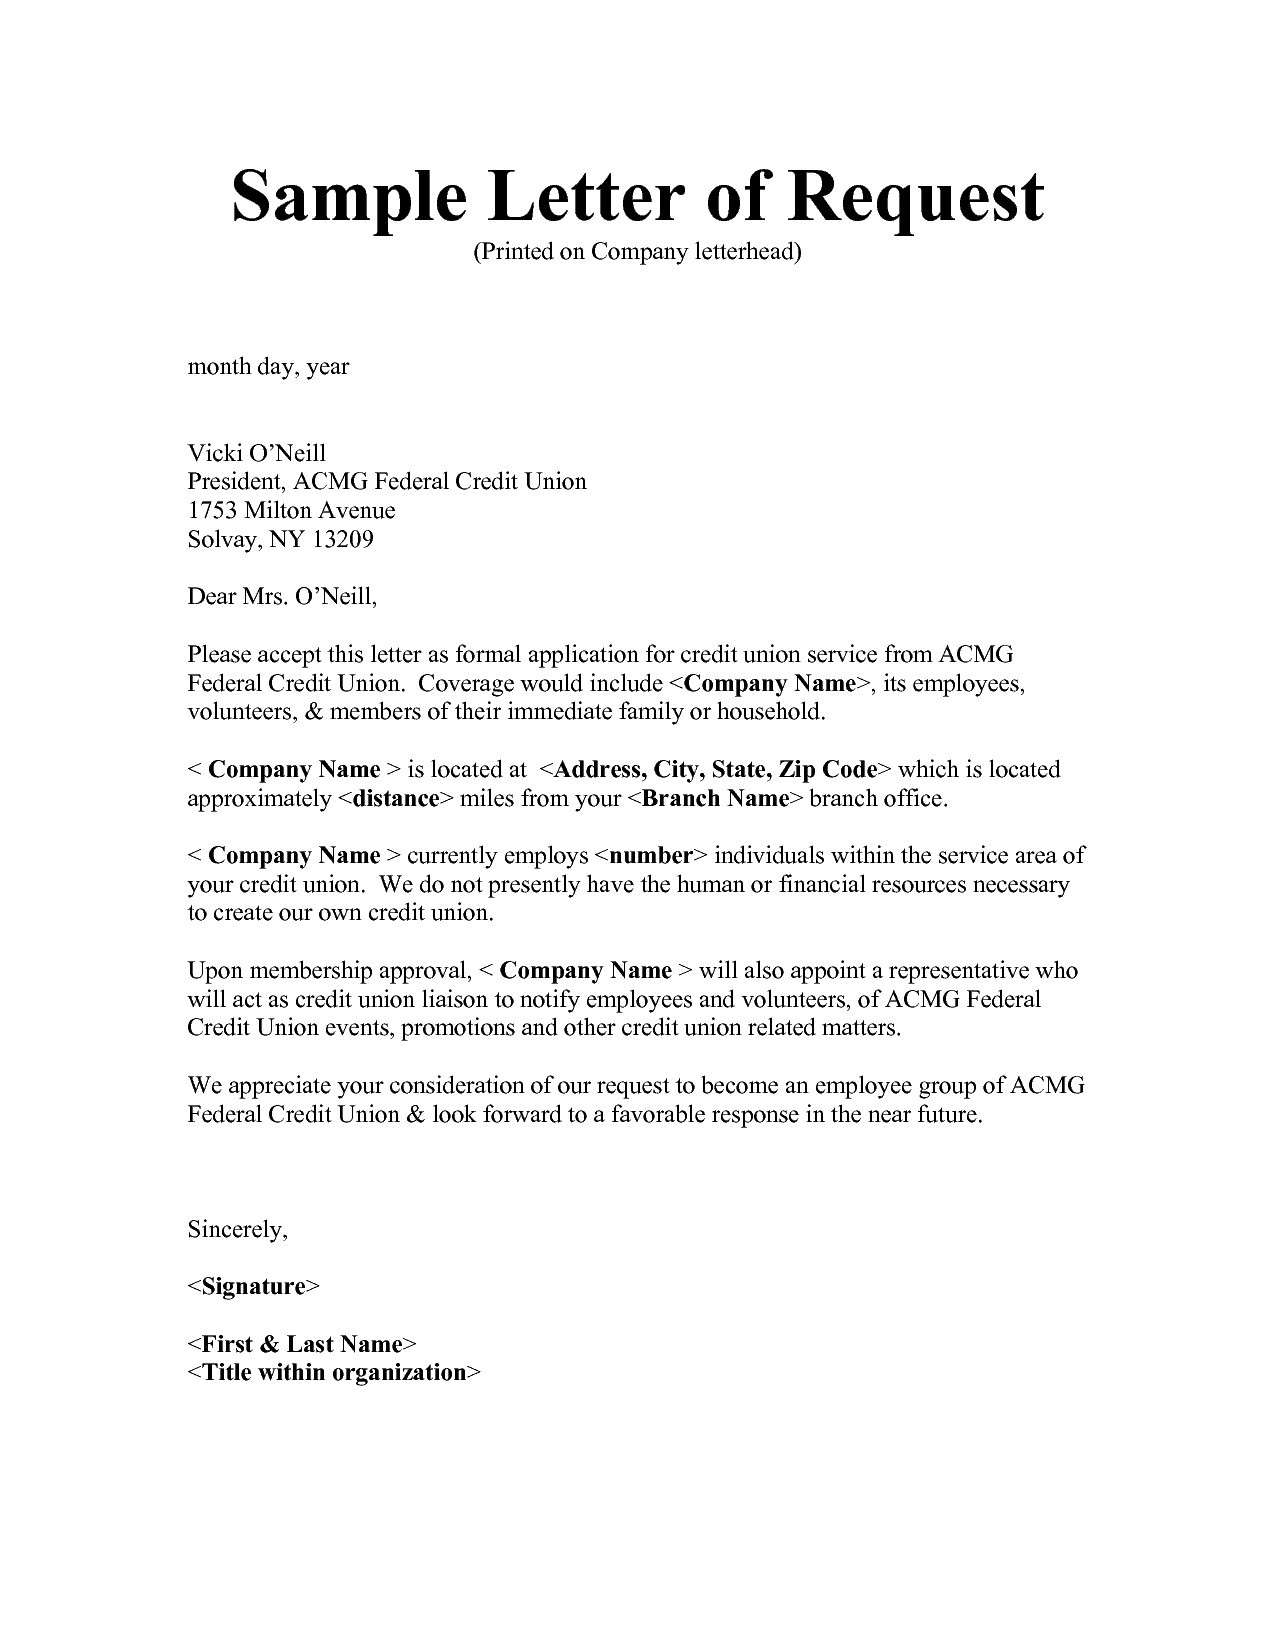 Rent reduction letter template samples letter template collection rent reduction letter template 7 give rise to late rent notice template print wgftlvu spiritdancerdesigns Image collections